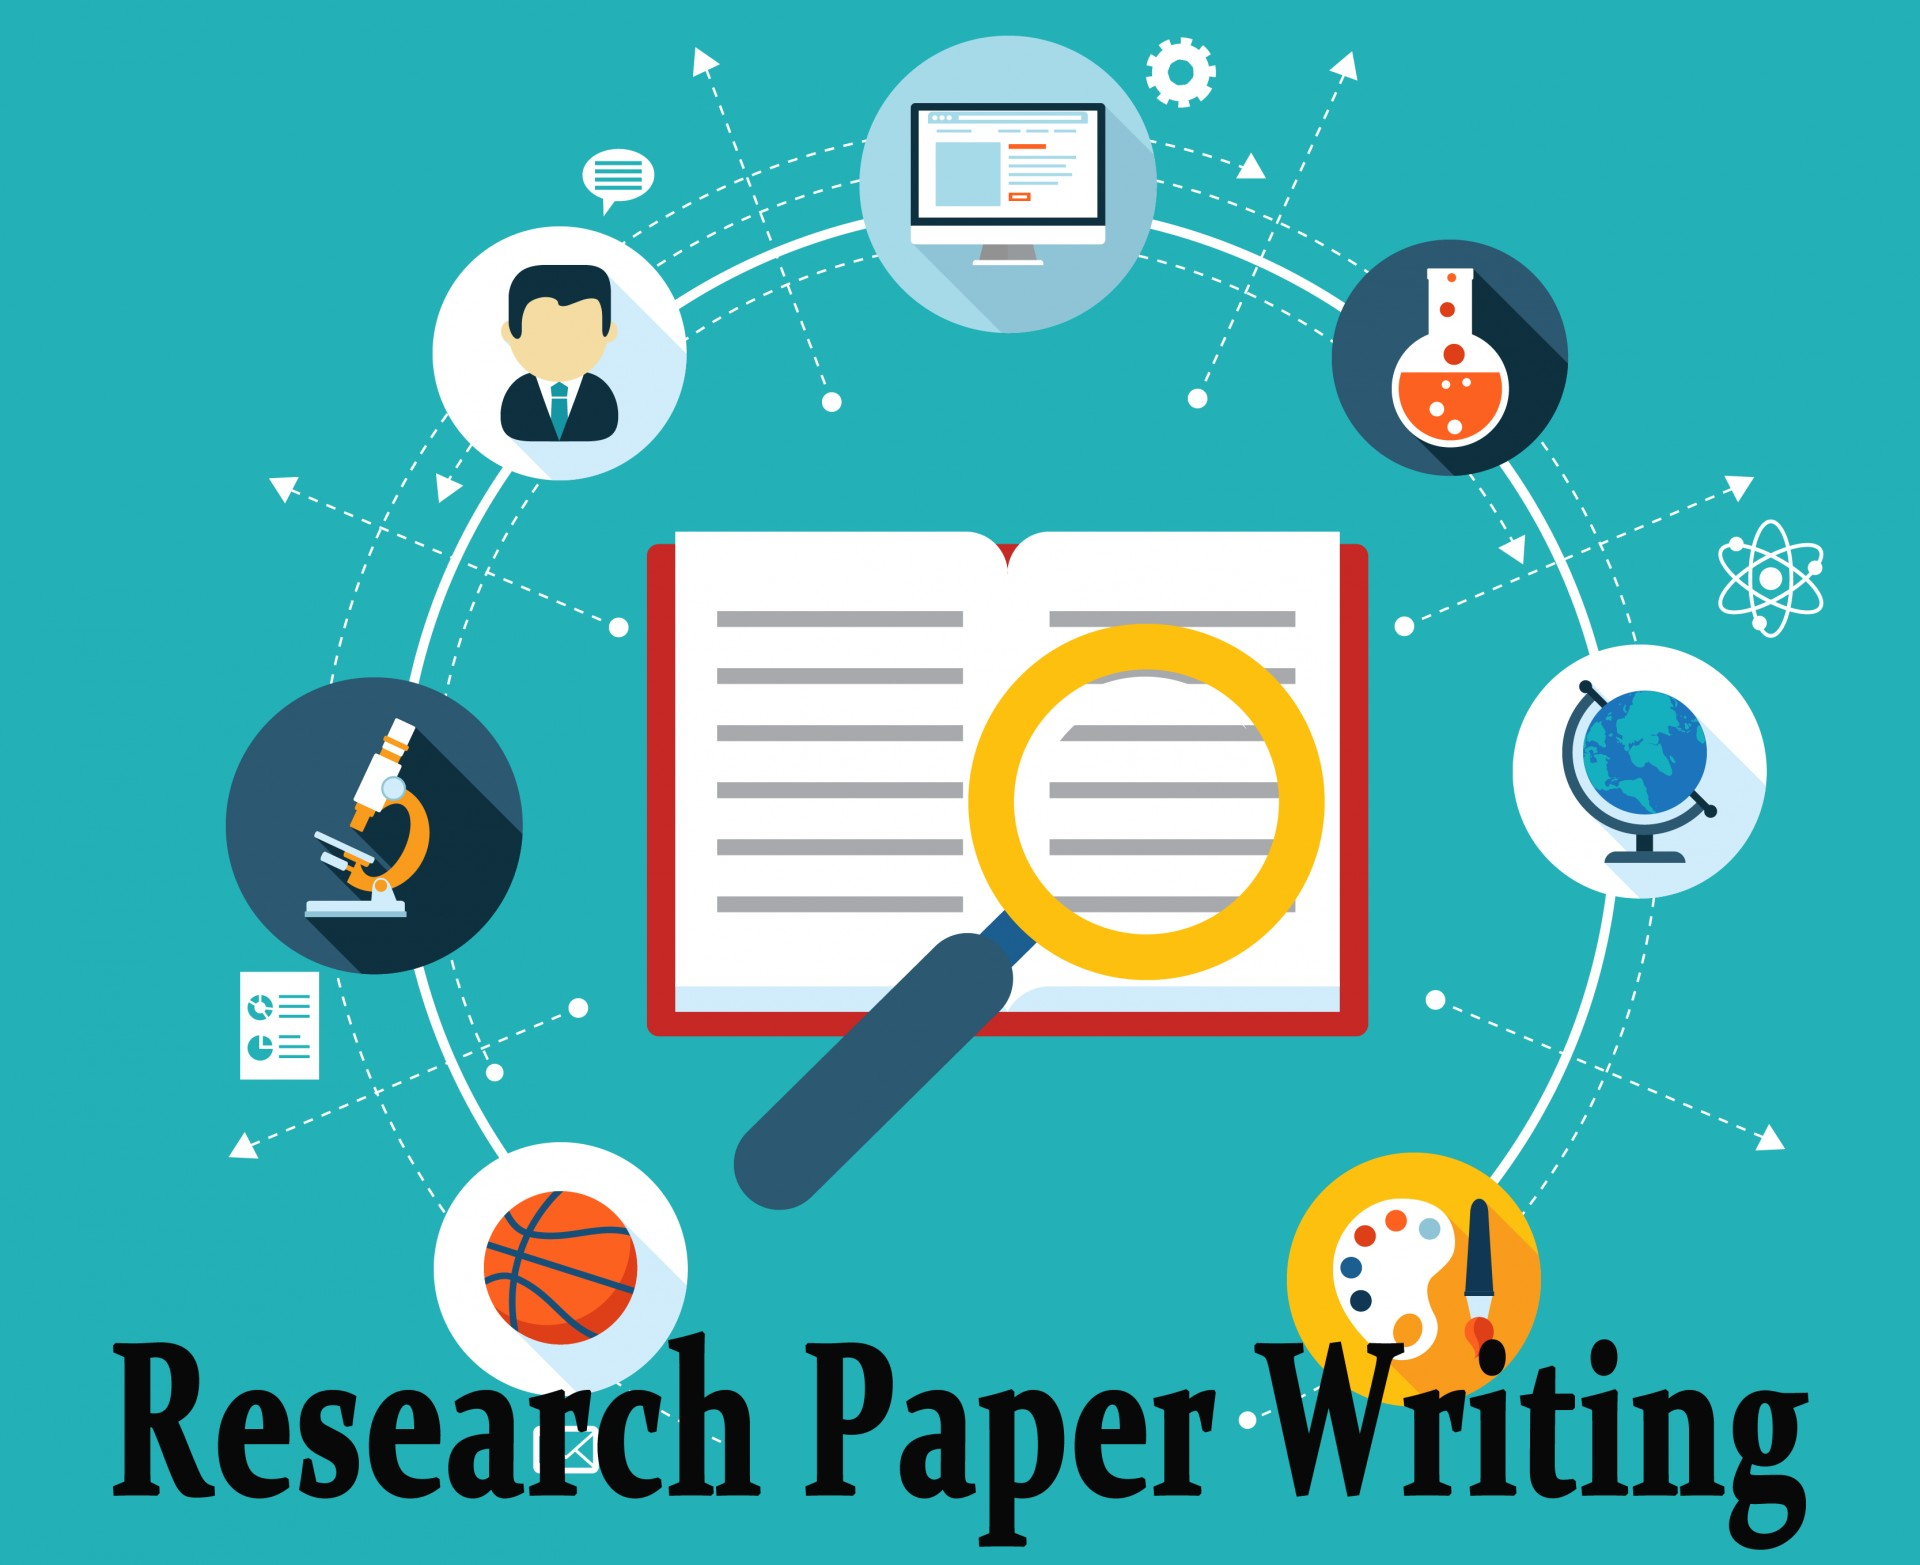 015 Research Paper 503 Effective Striking Writing Papers A Complete Guide Global Edition Pdf Lester 16th Free 1920